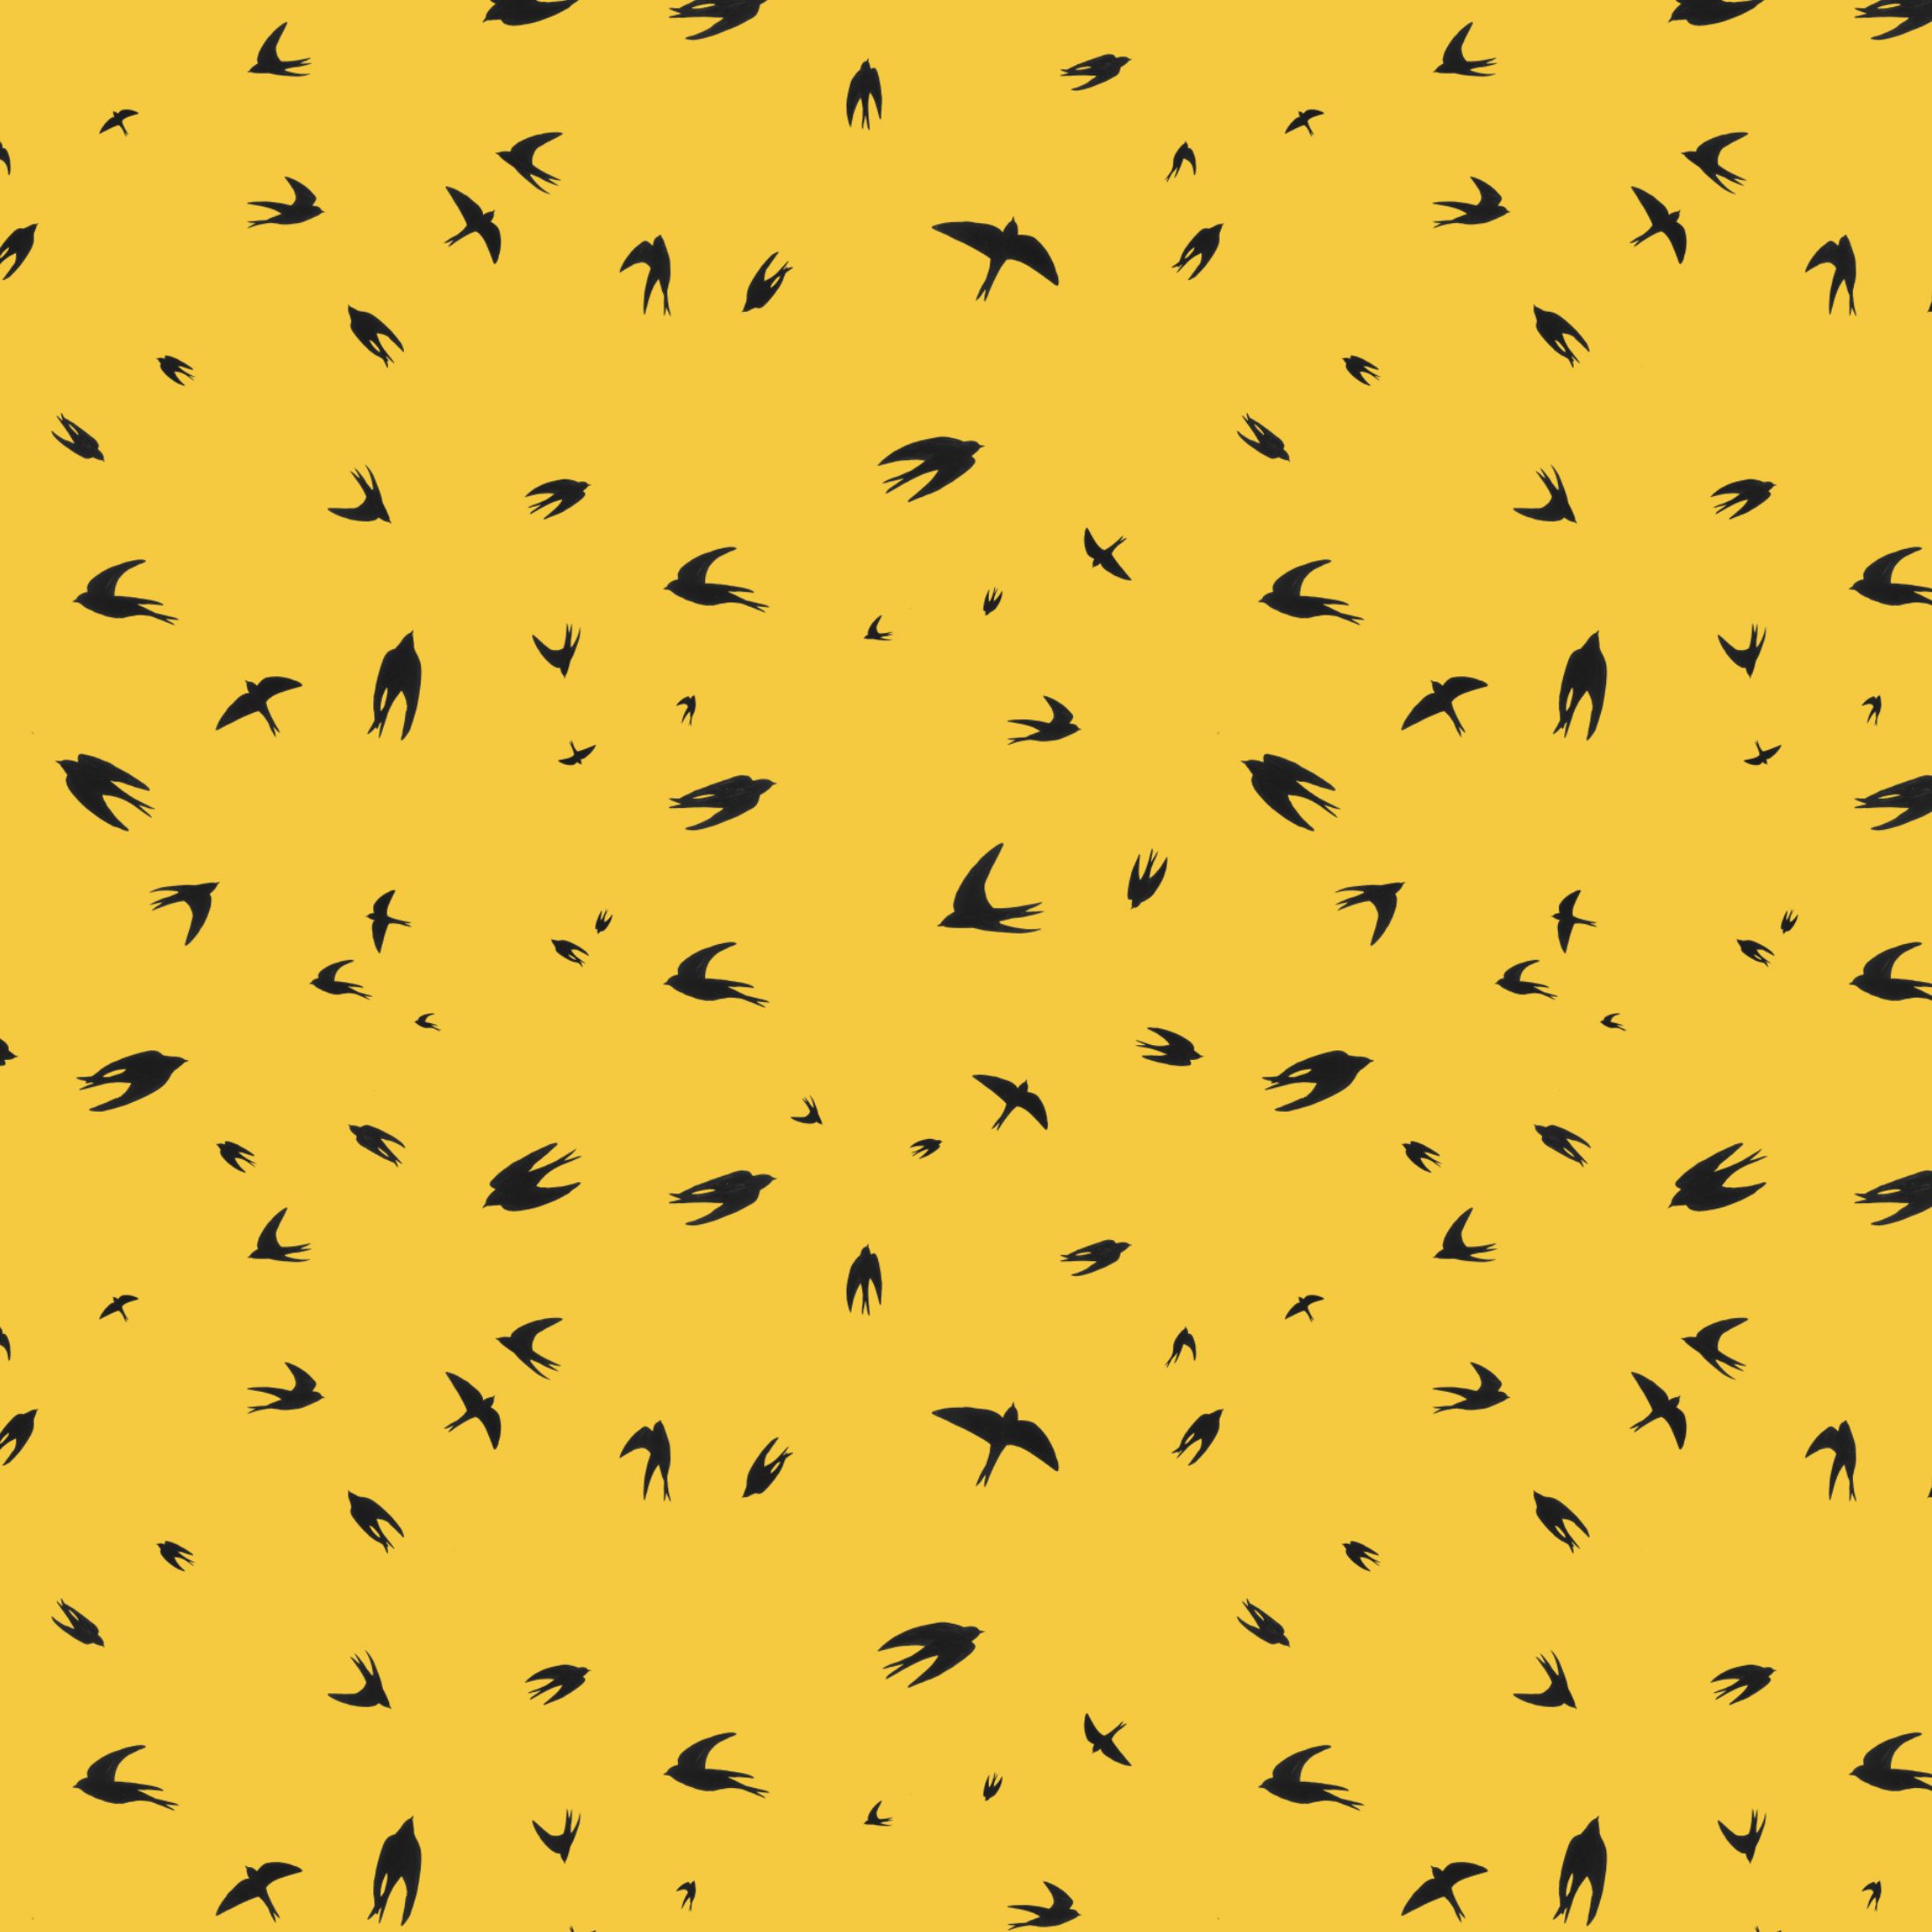 scattered swallows pattern